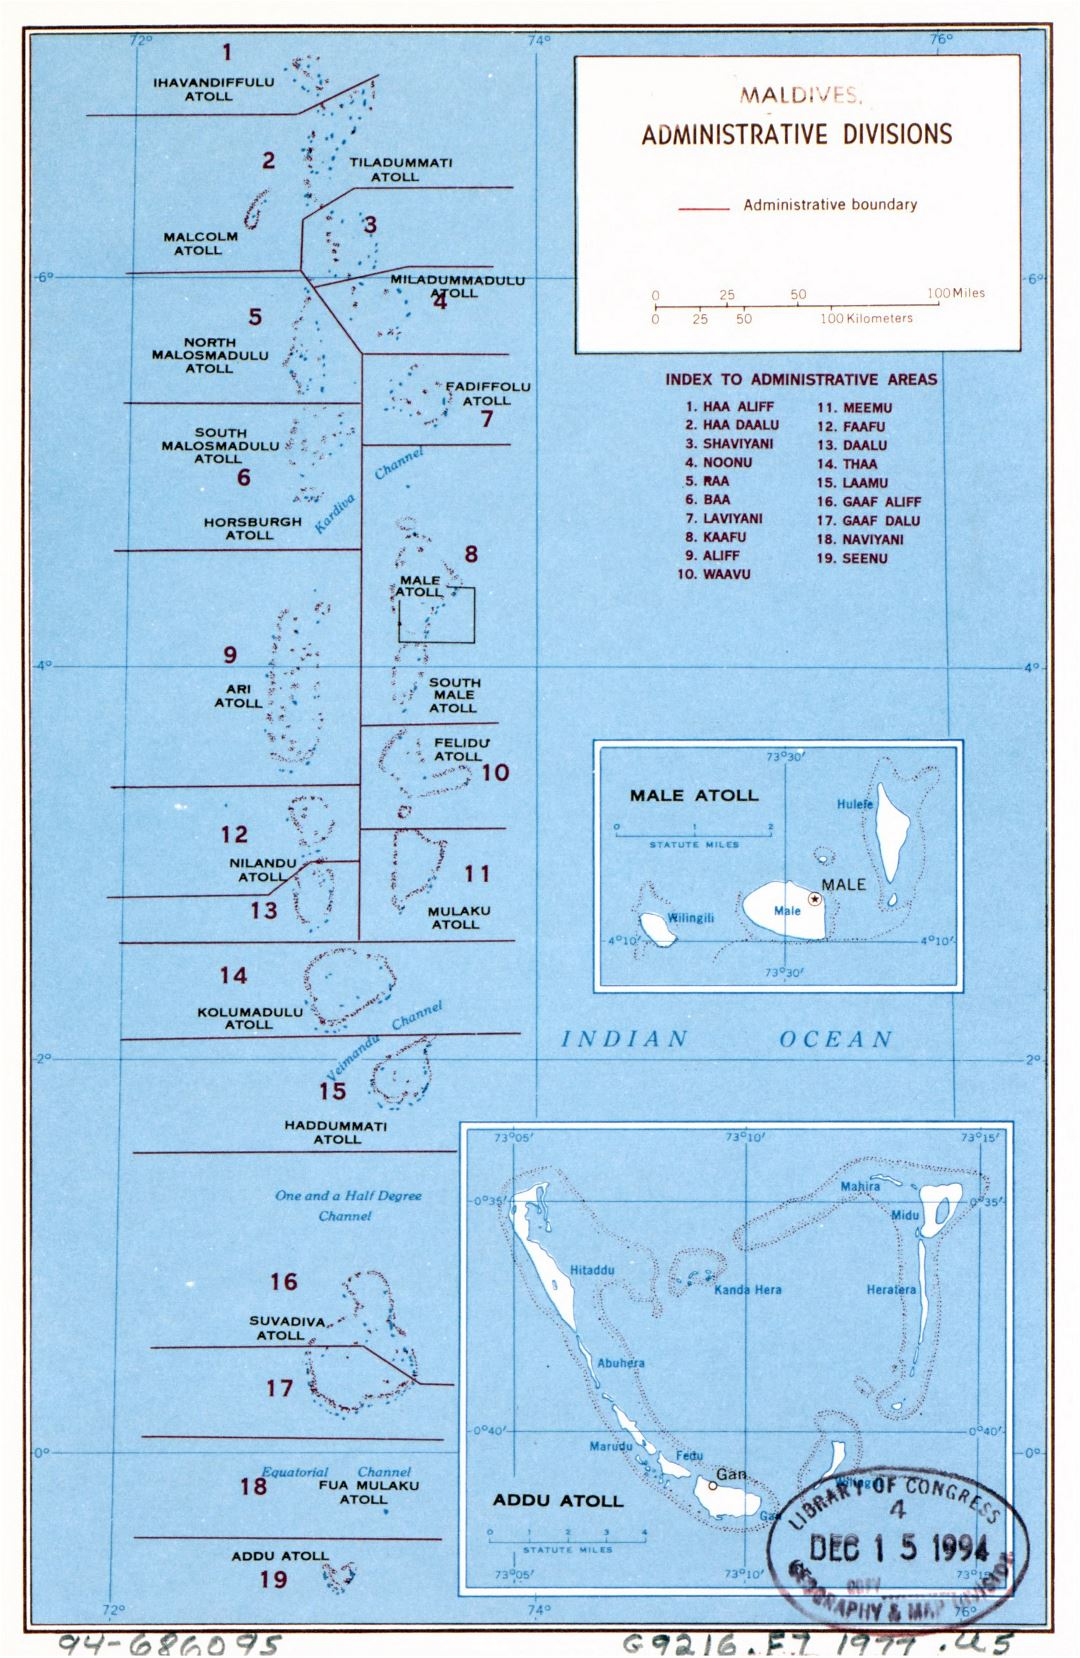 Large administrative divisions map of Maldives - 1977